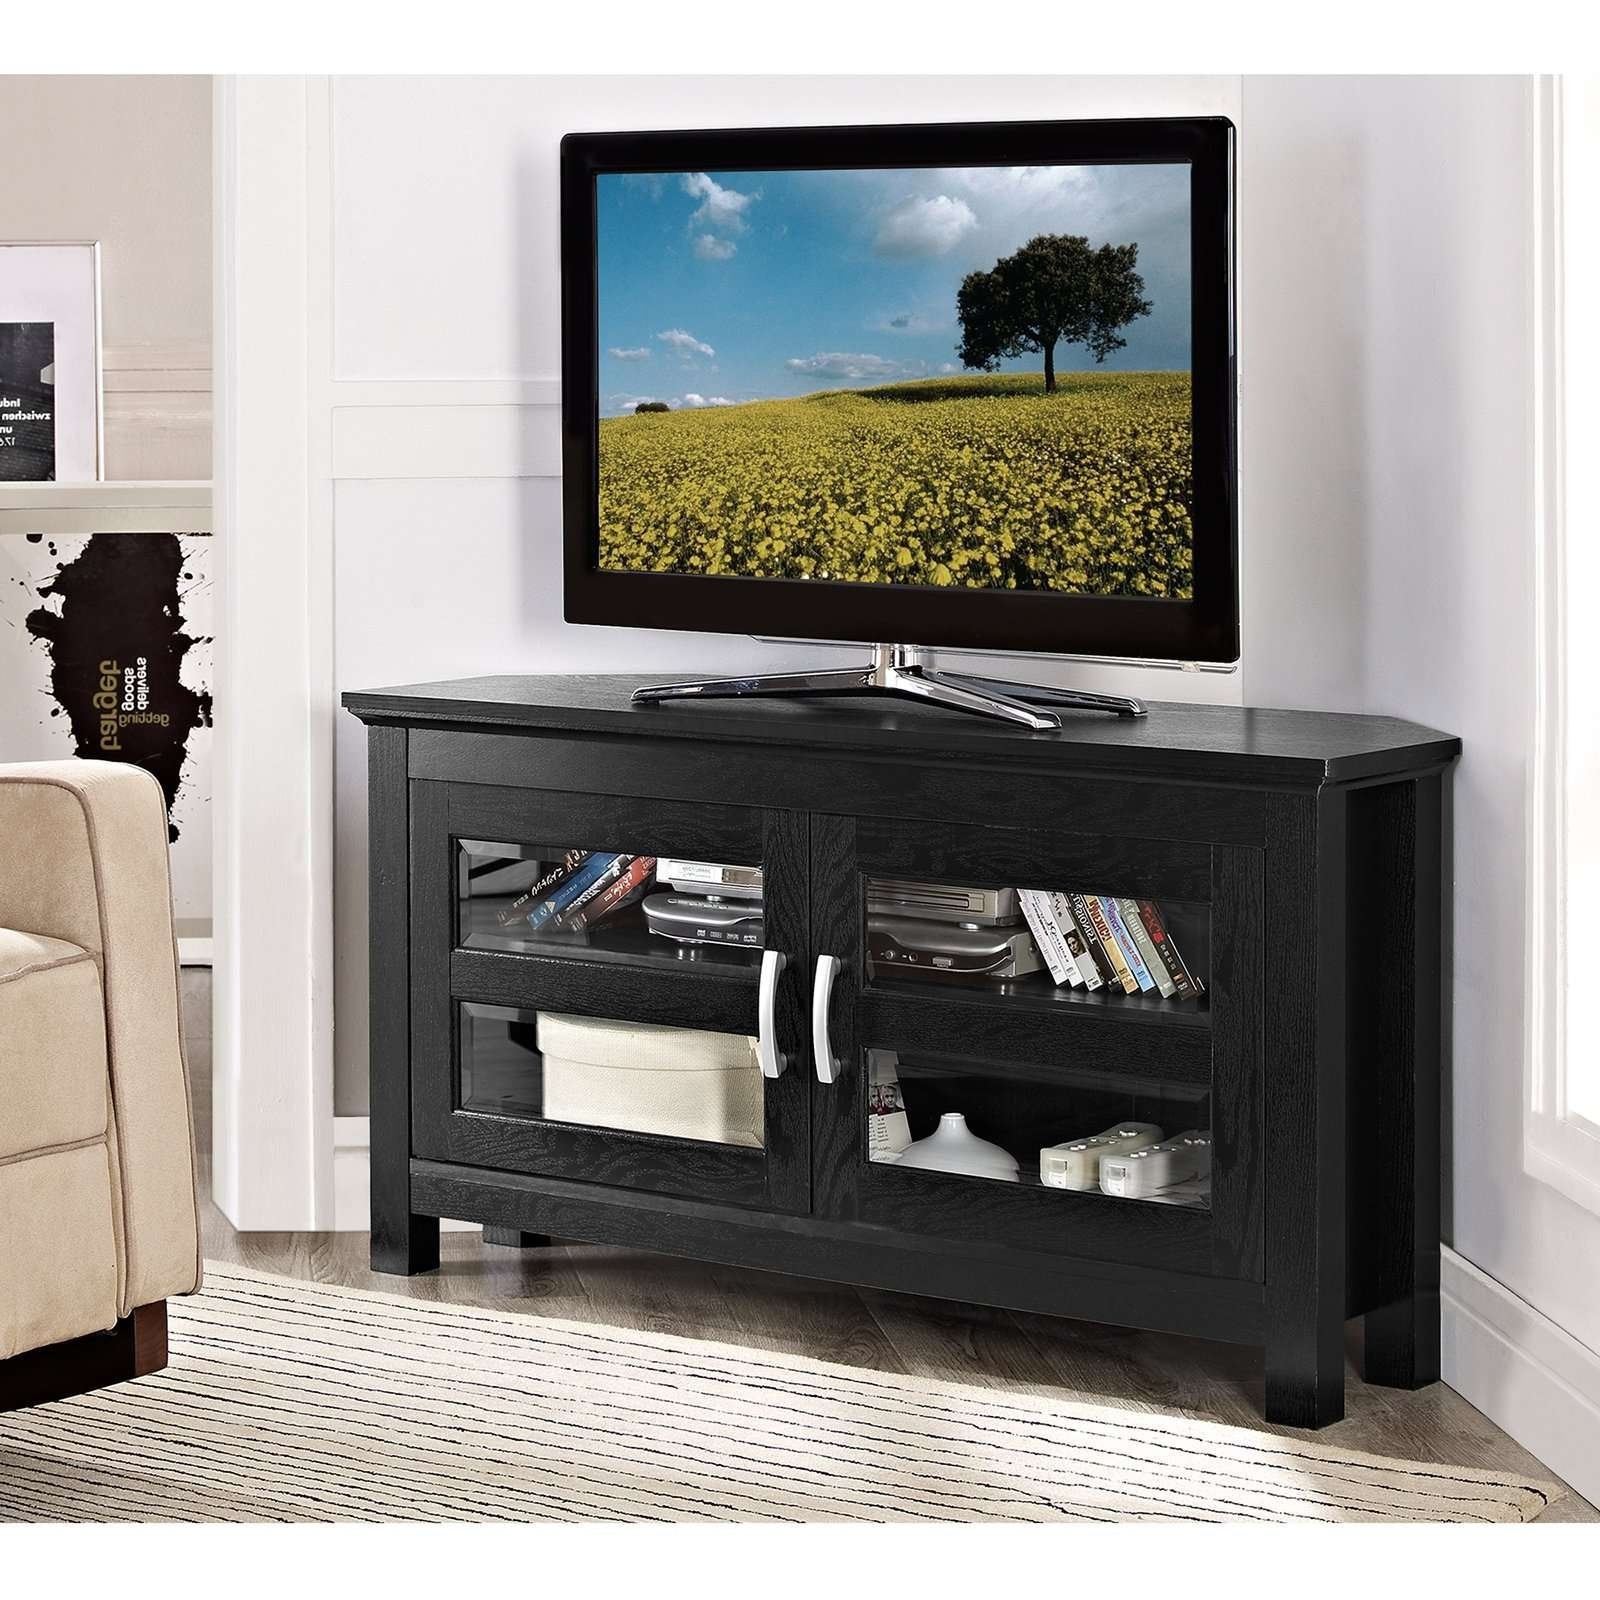 Compton Black Corner Tv Stand | Hayneedle Throughout Black Wood Corner Tv Stands (View 6 of 15)